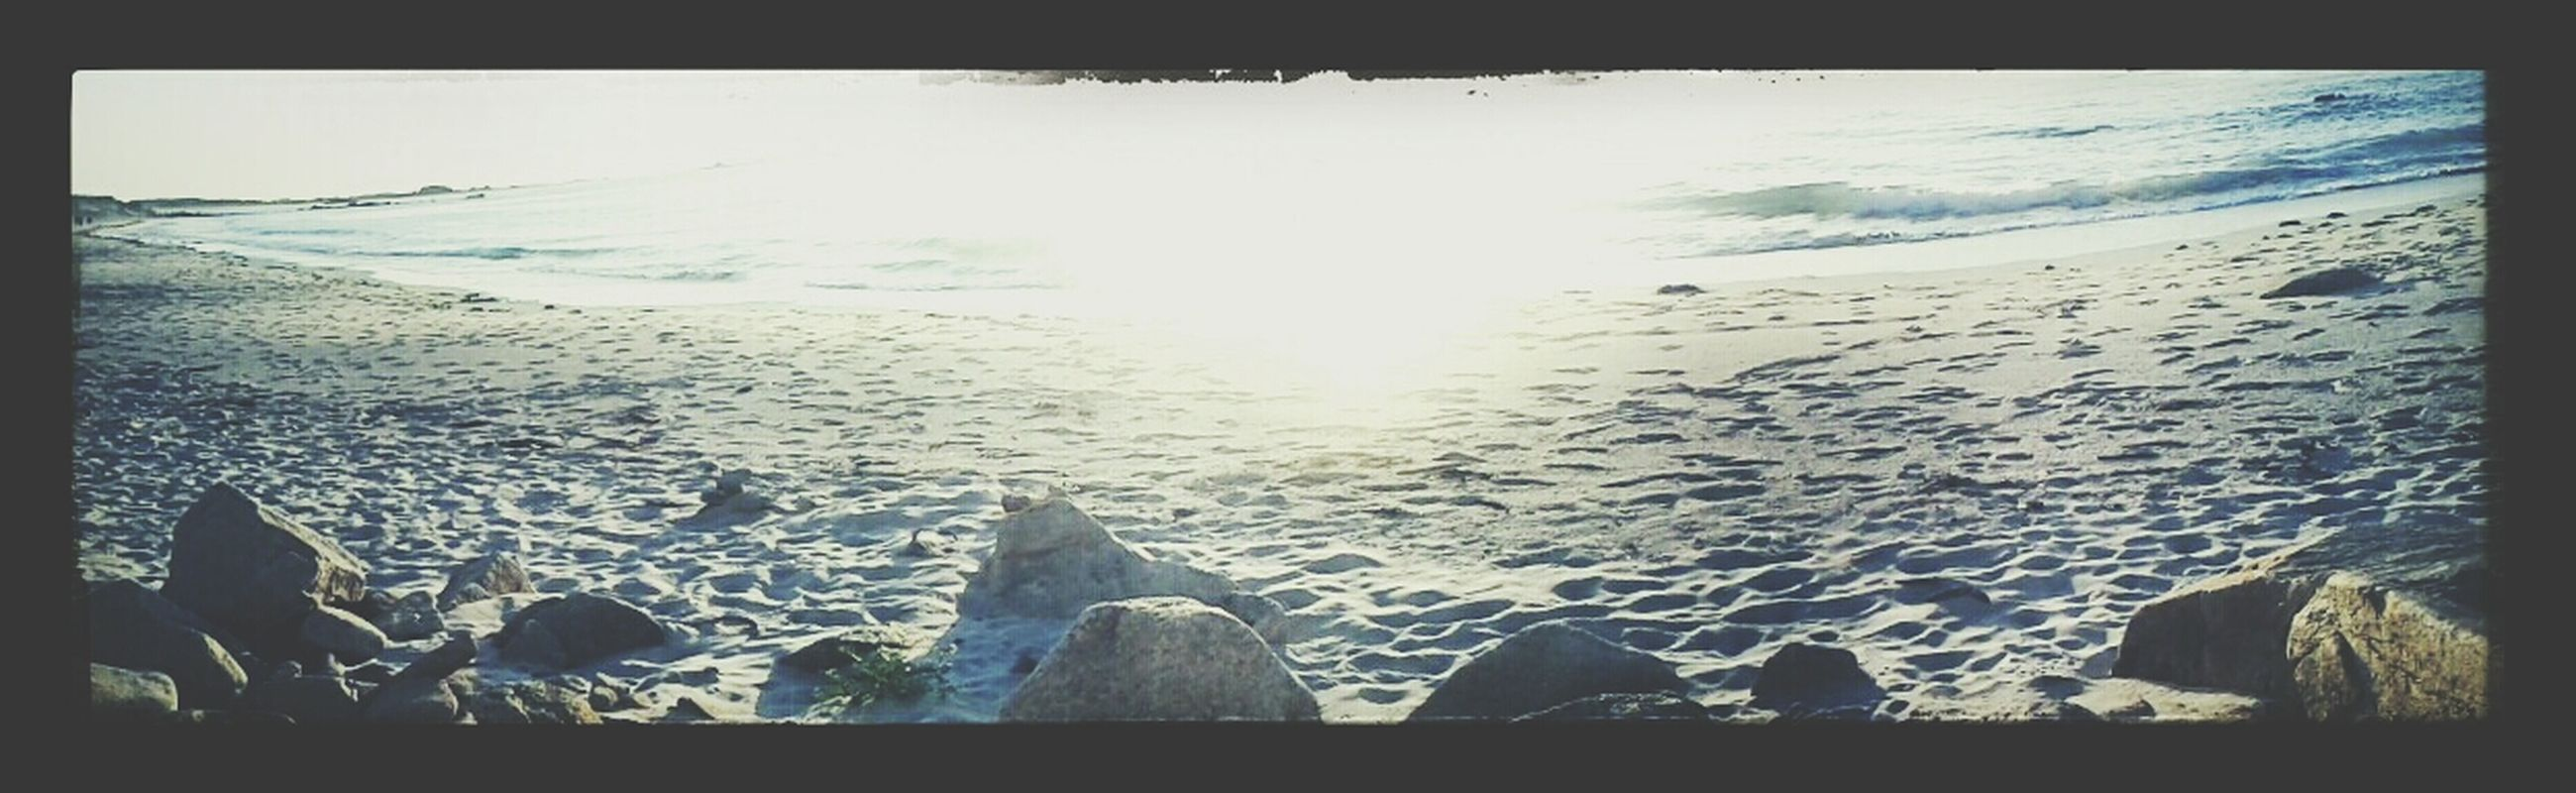 transfer print, sea, auto post production filter, water, beach, scenics, beauty in nature, tranquil scene, nature, tranquility, shore, horizon over water, sunlight, panoramic, vacations, sky, silhouette, sand, tourism, idyllic